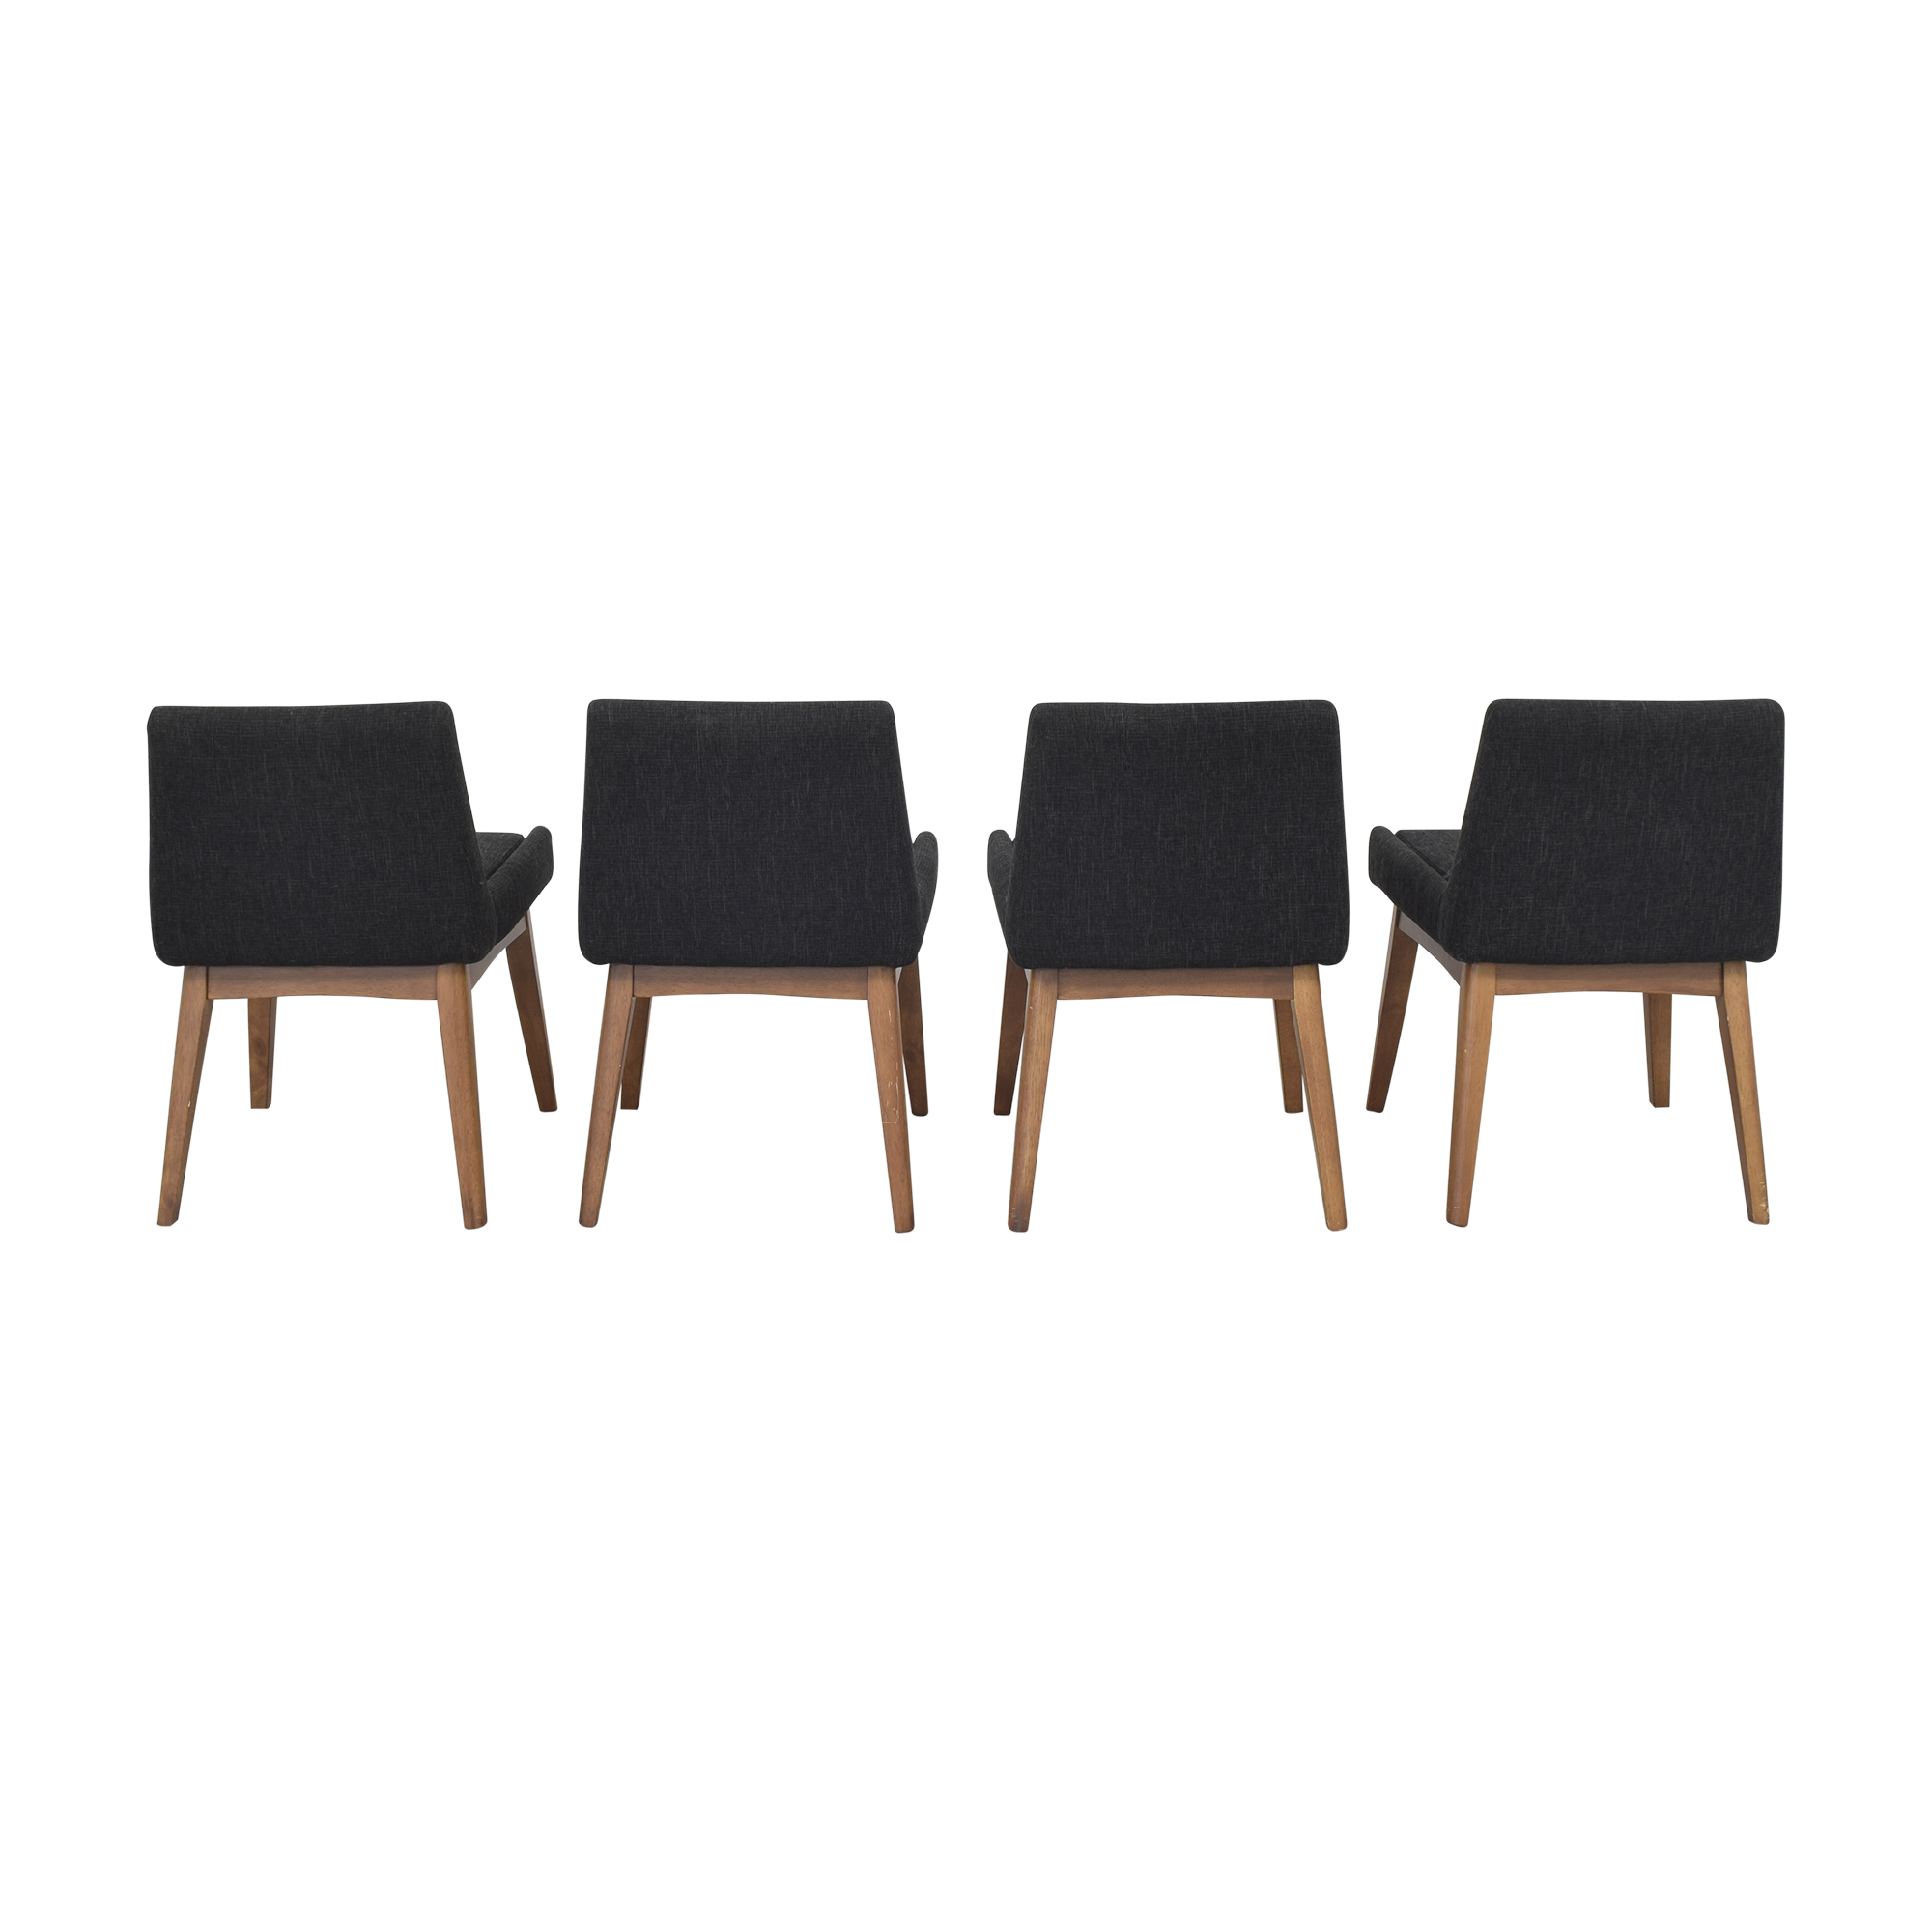 AllModern AllModern Hayes Upholstered Dining Chairs nyc